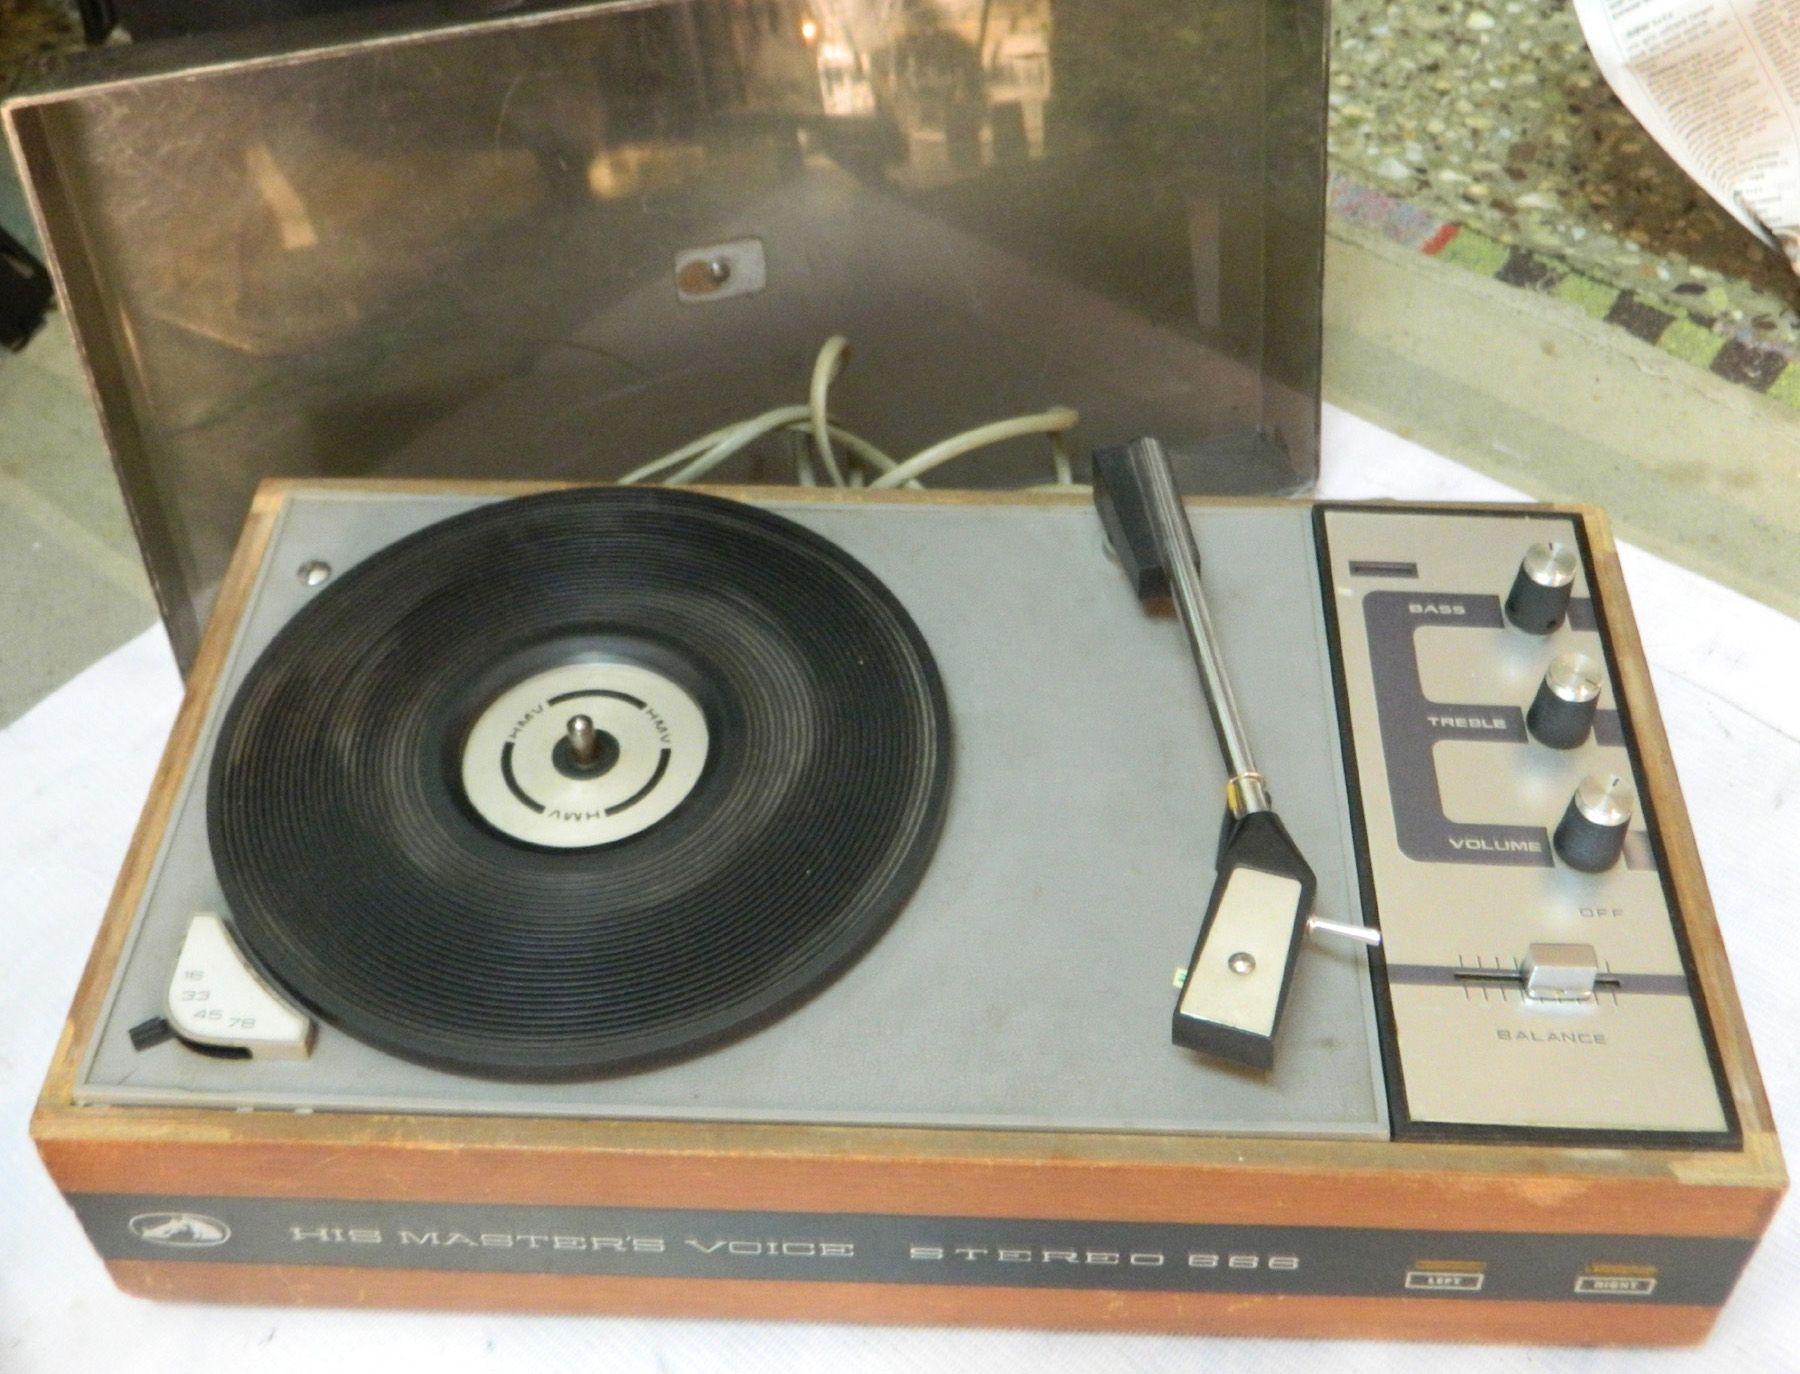 Hmv Stereo 666 Vintage Simple Record Player With Built In Amp